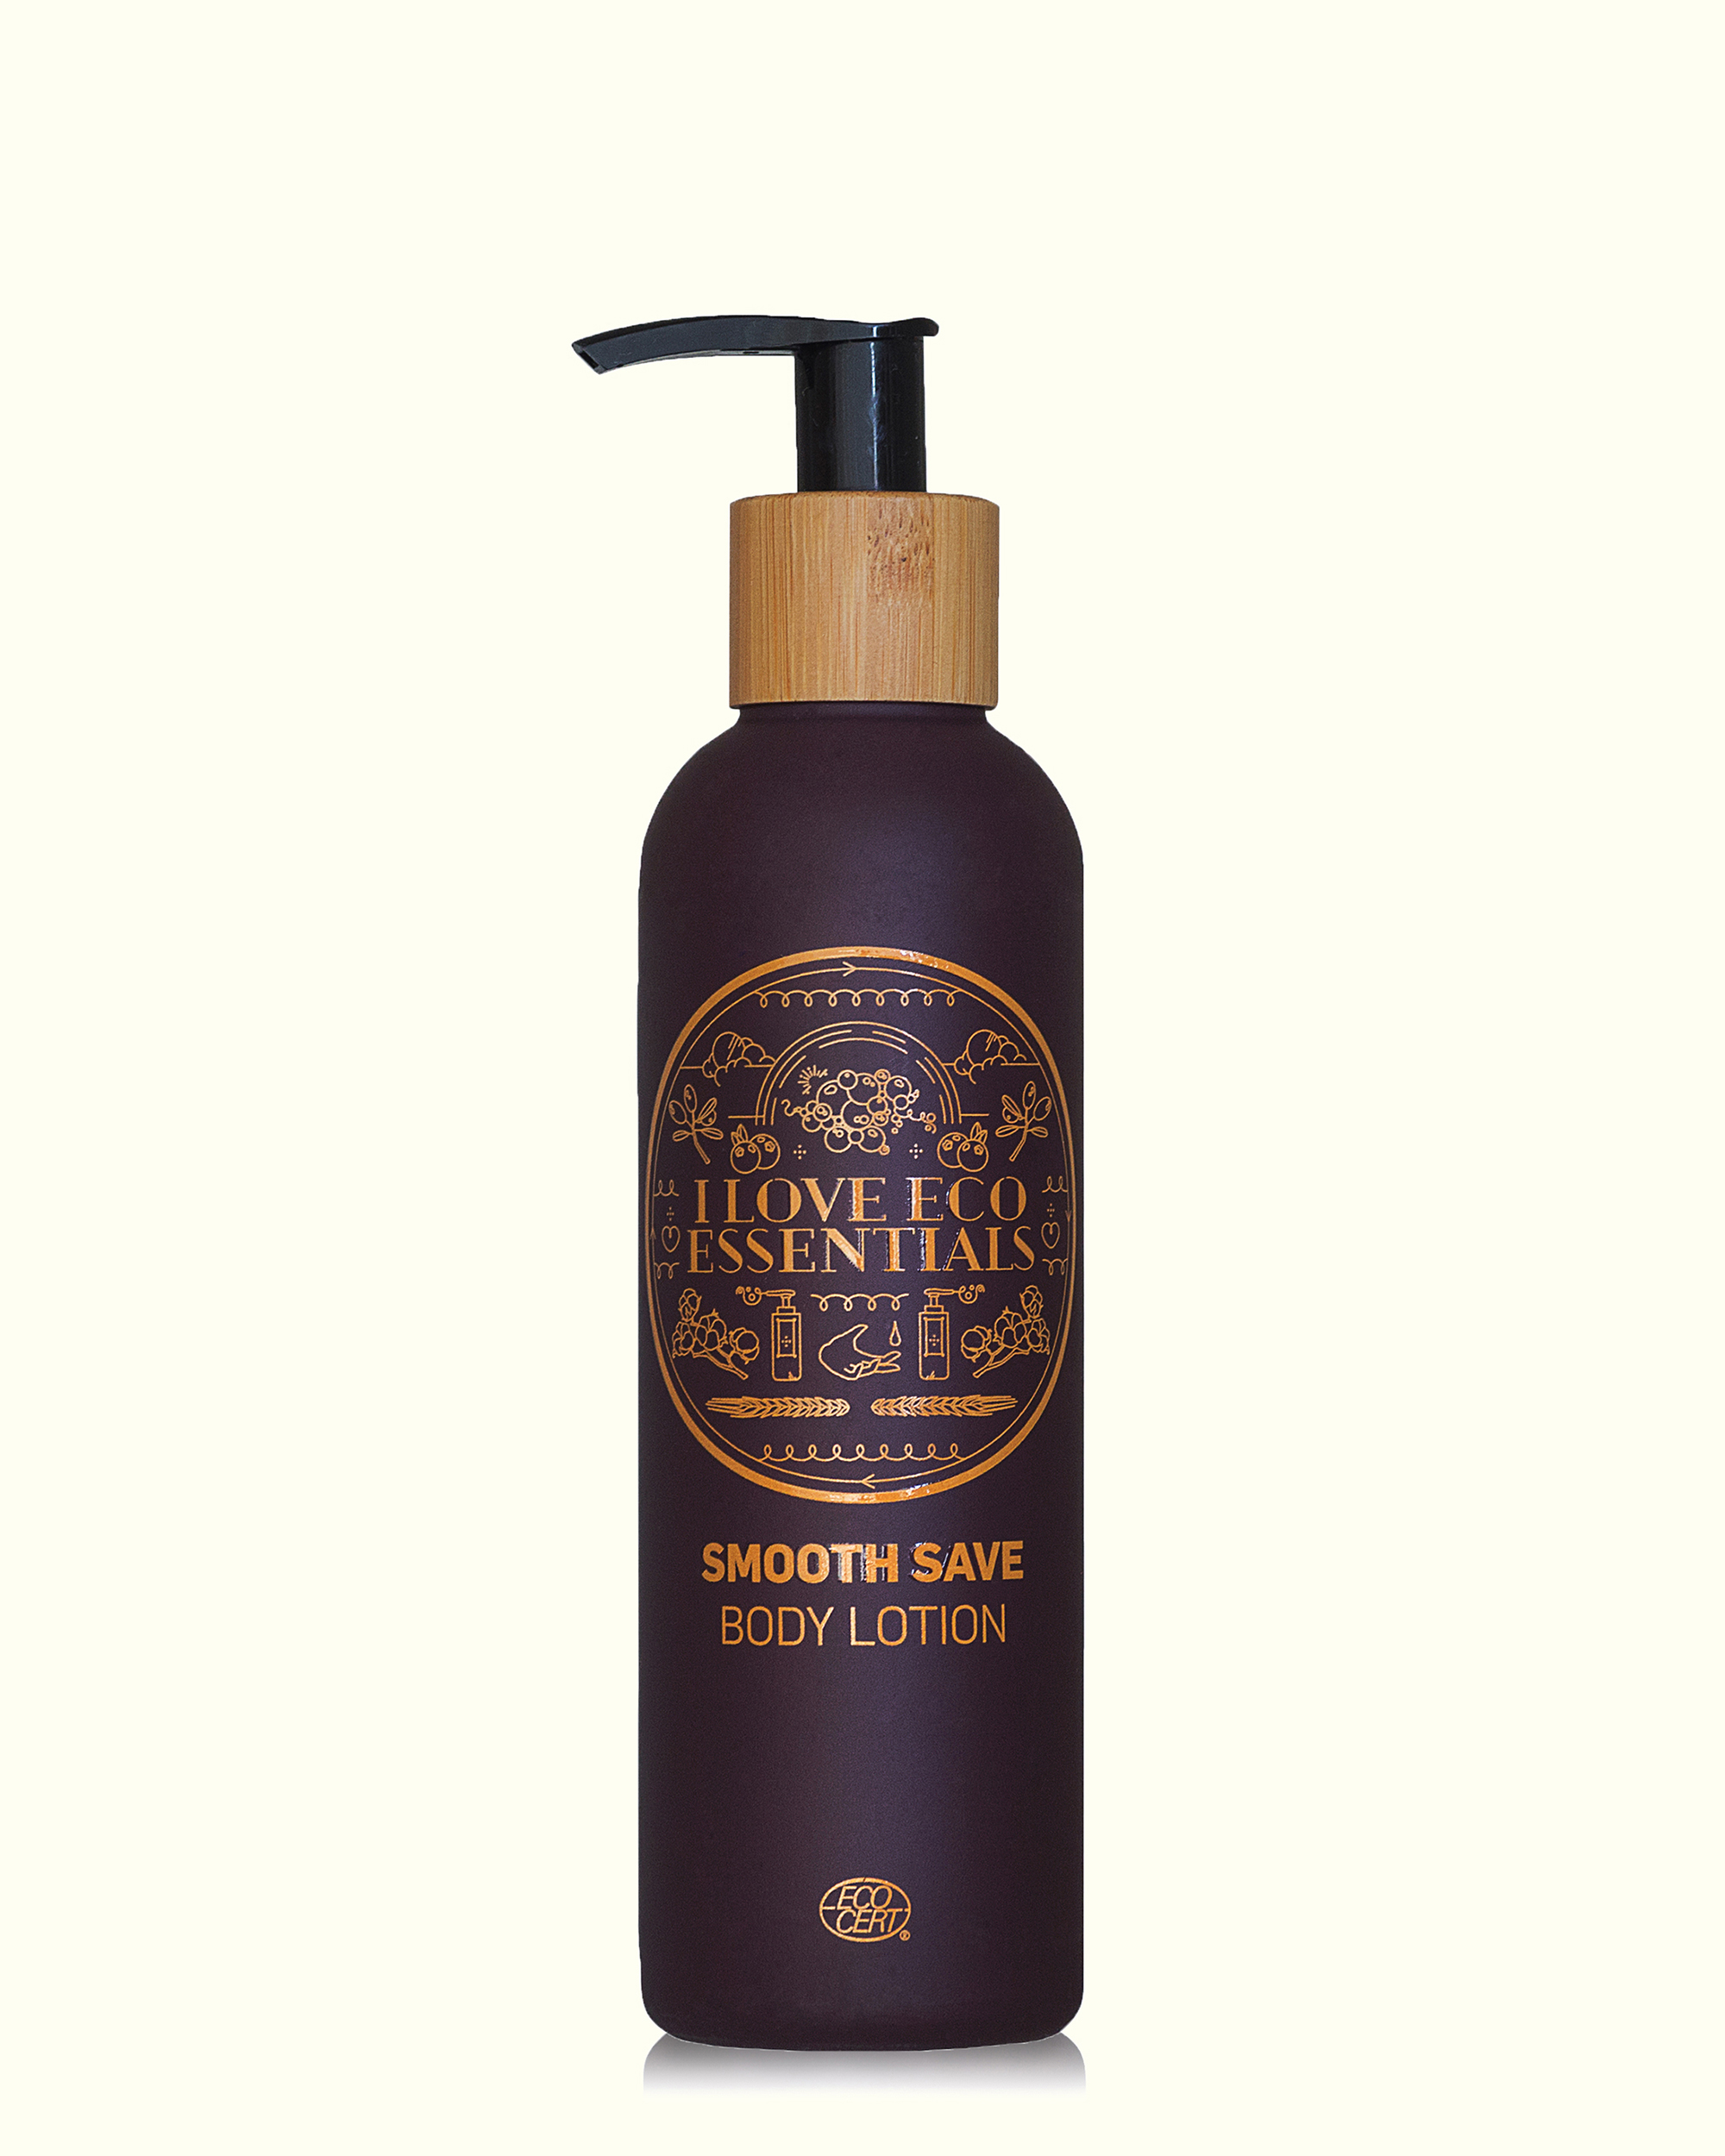 BODY LOTION 'smoot save' from I LOVE ECO ESSENTIALS